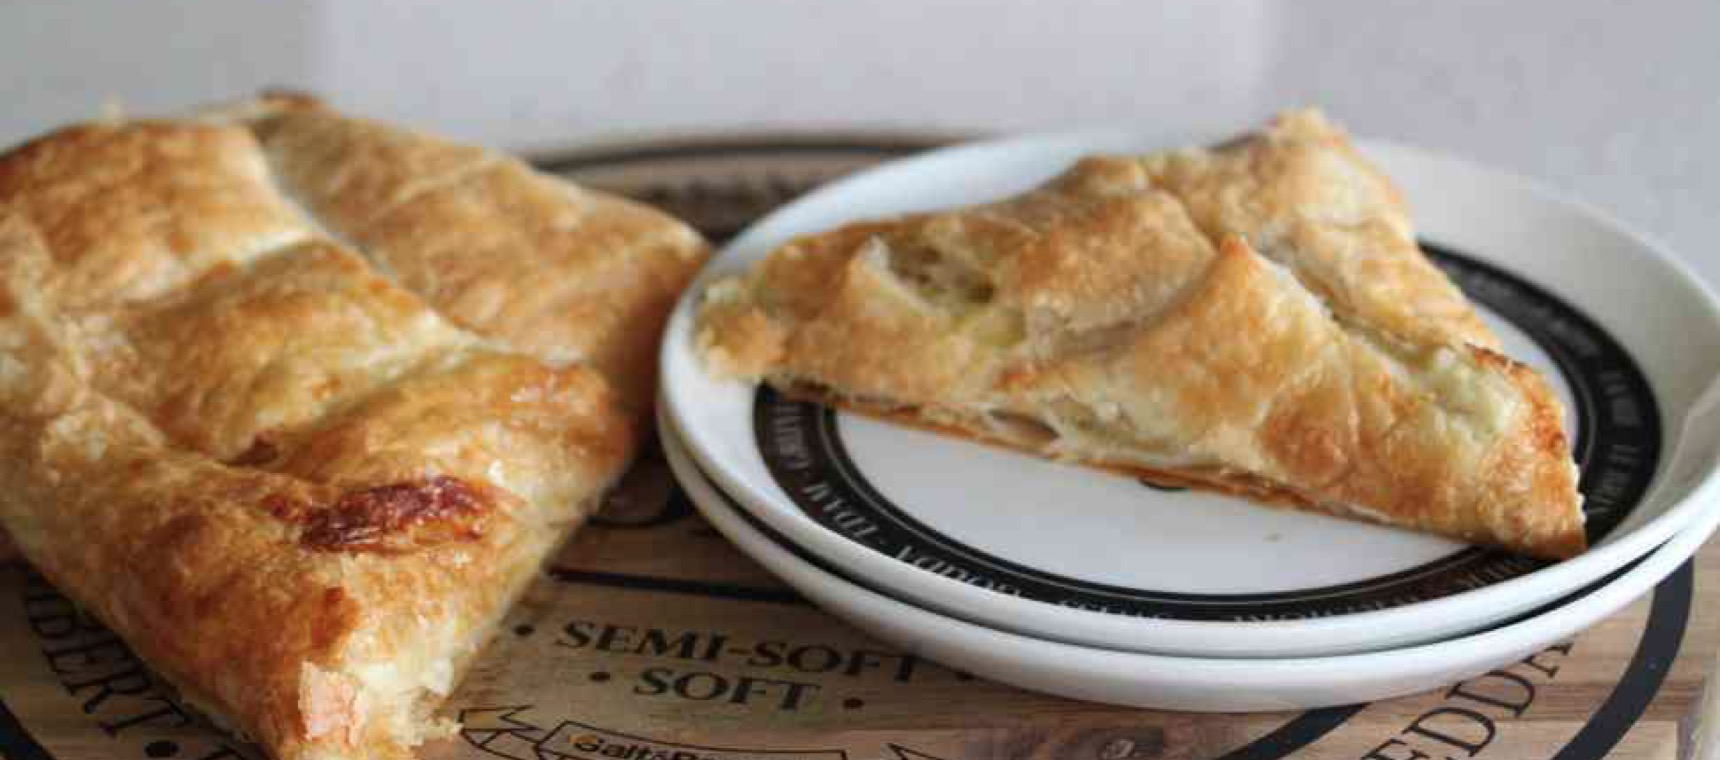 Brie and Leek Pastries